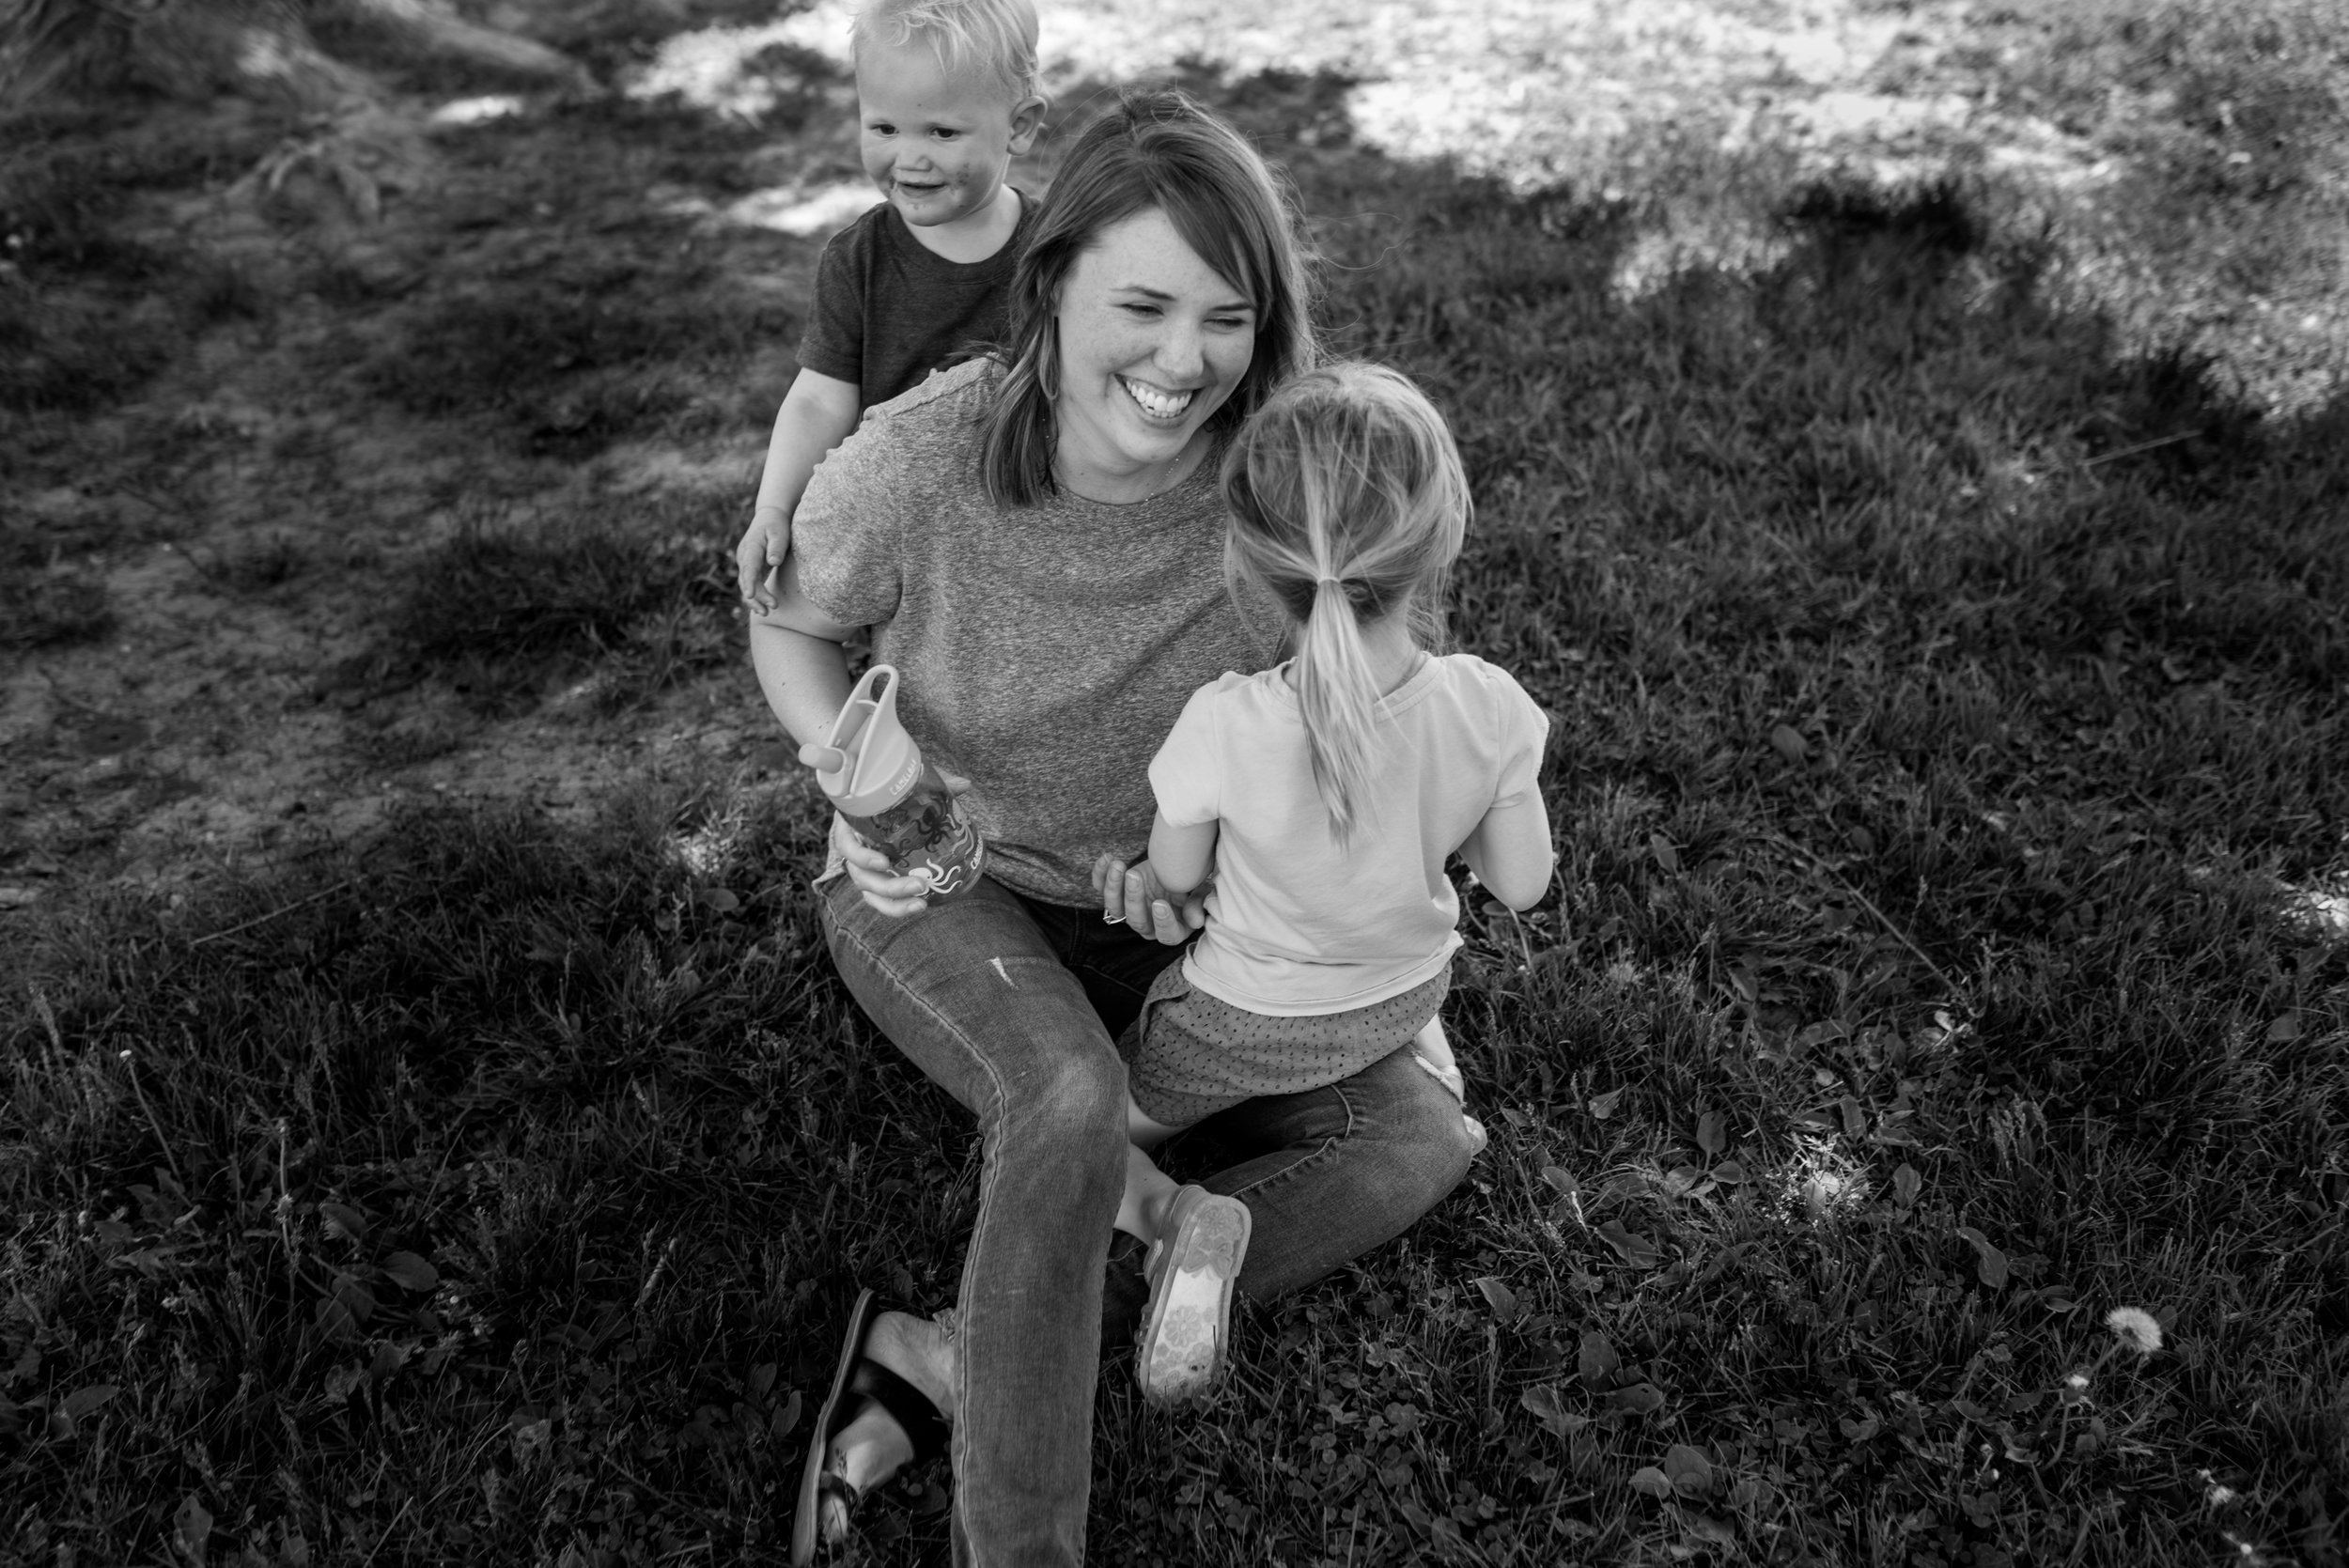 Son and daughter hugging mom while sitting in the grass, mom laughing